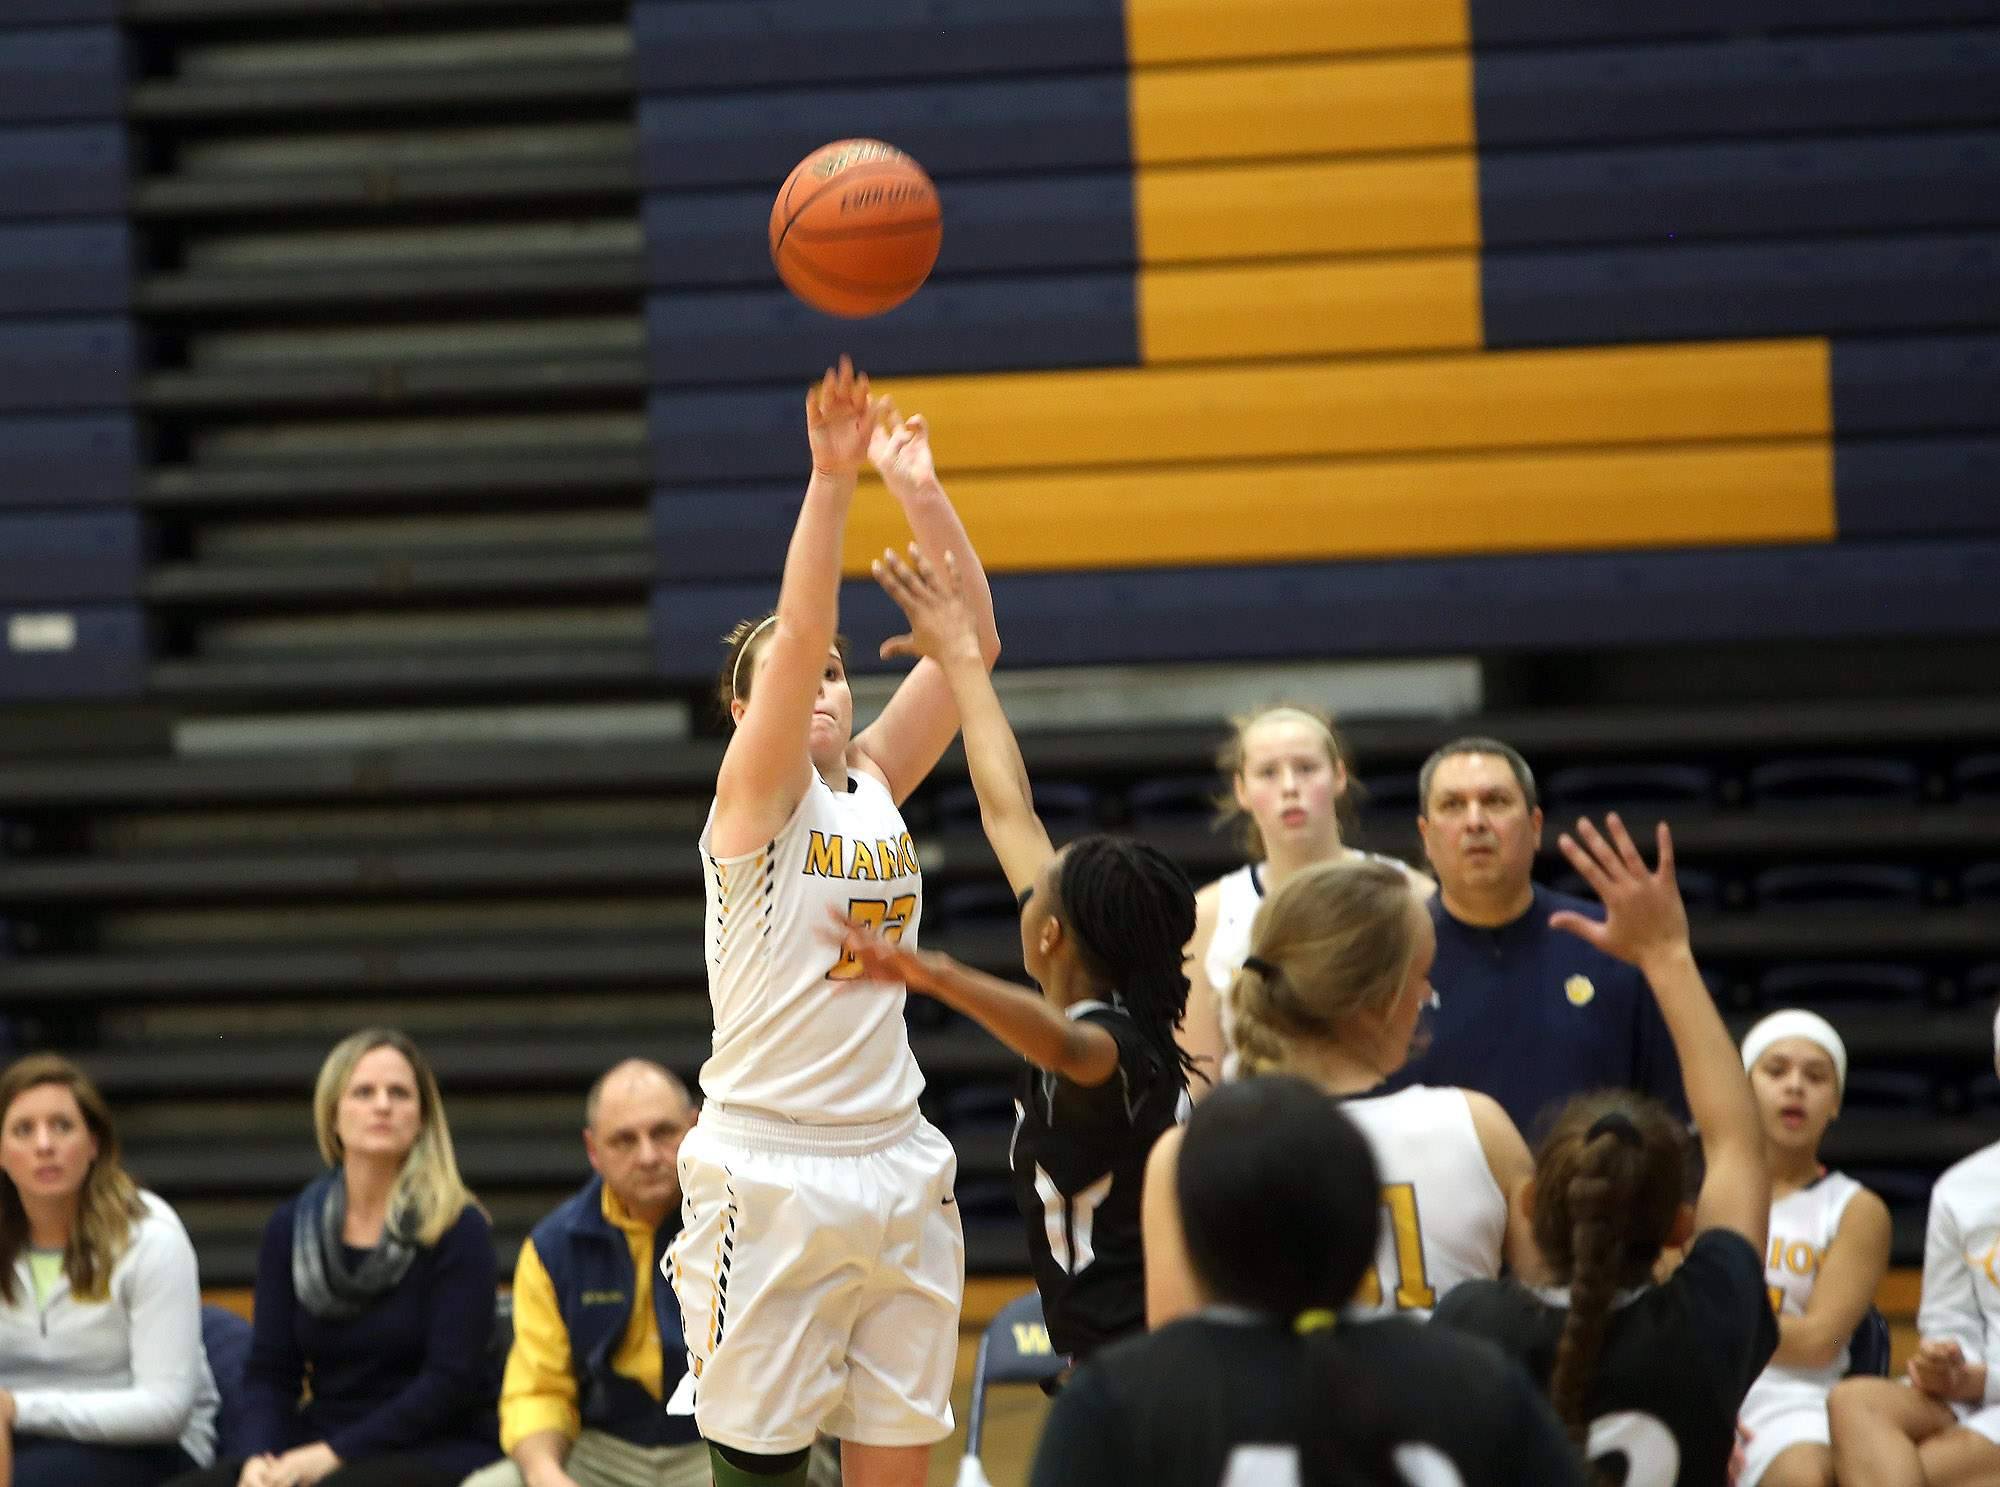 Abby Bayer hits a 3-pointer with 44 seconds left.